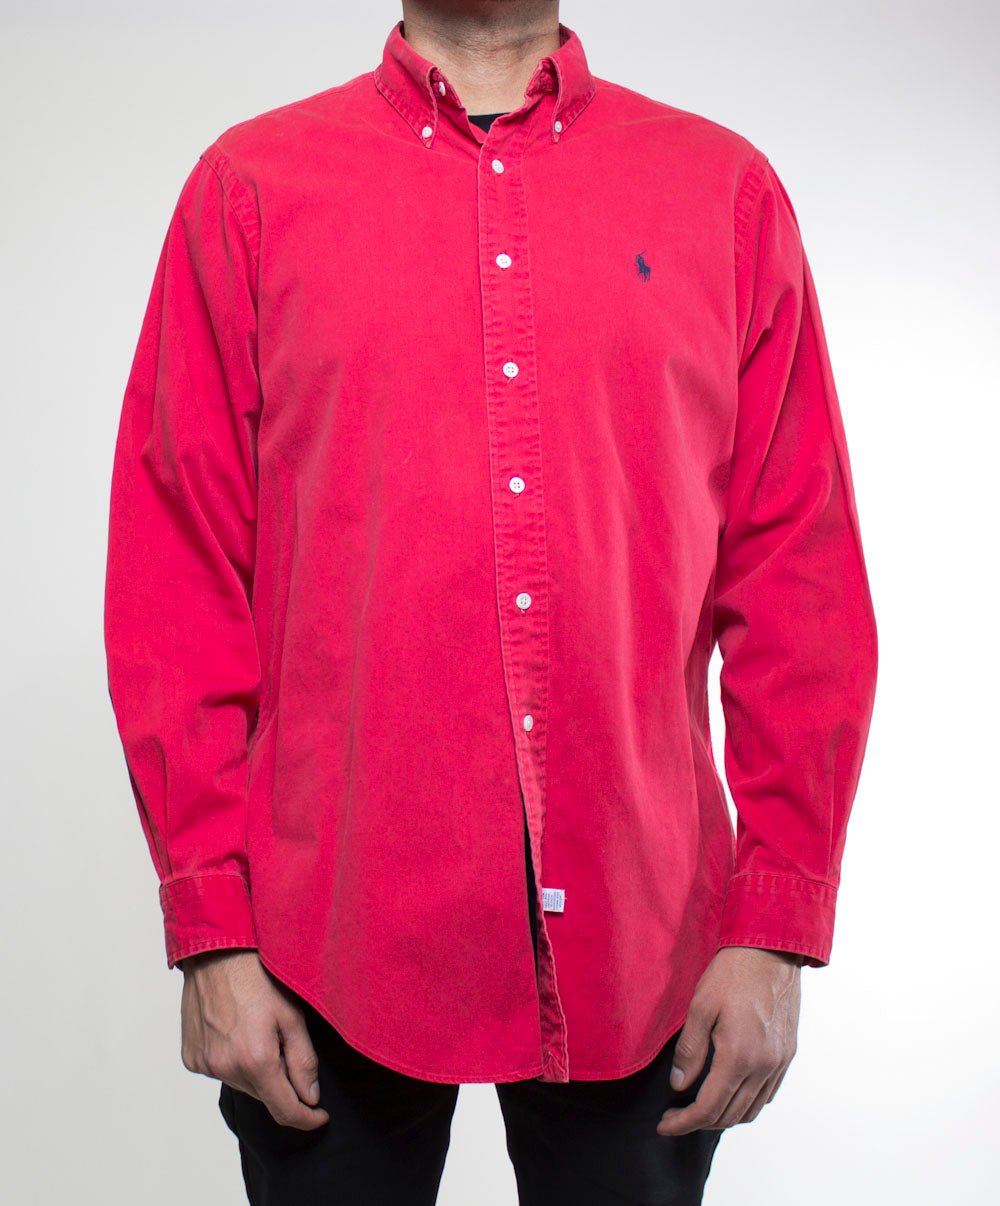 Red Ralph Lauren Button-Up